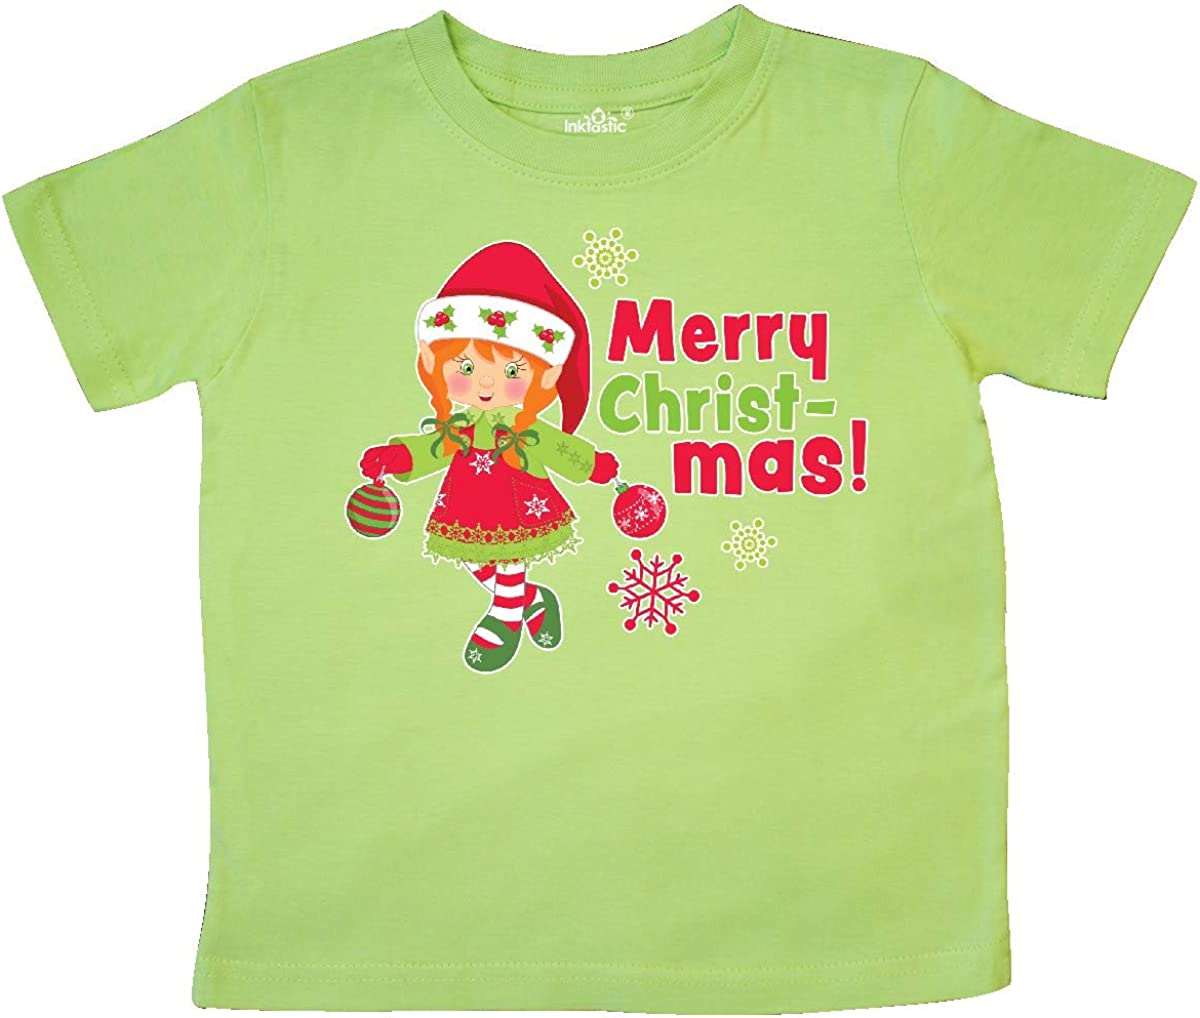 inktastic Merry Christmas Elf with Red Hair and Snowflakes Toddler T-Shirt